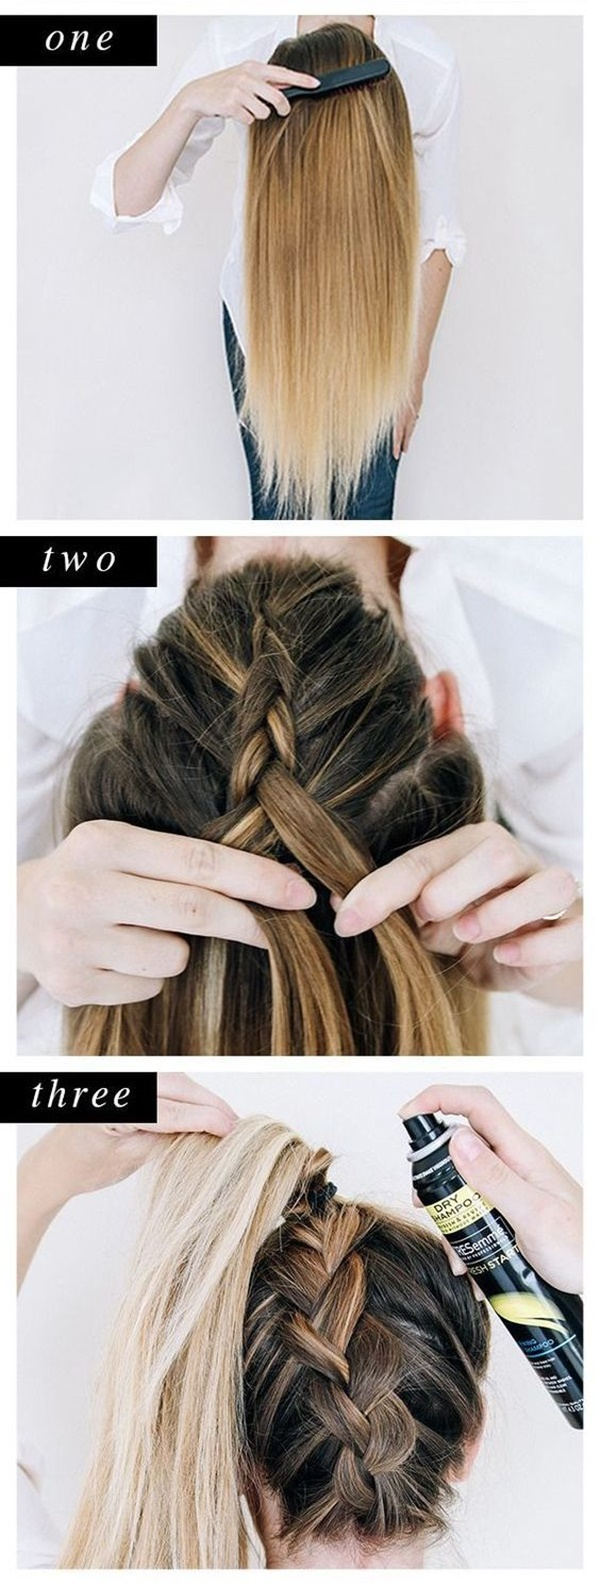 braided hair style for girls